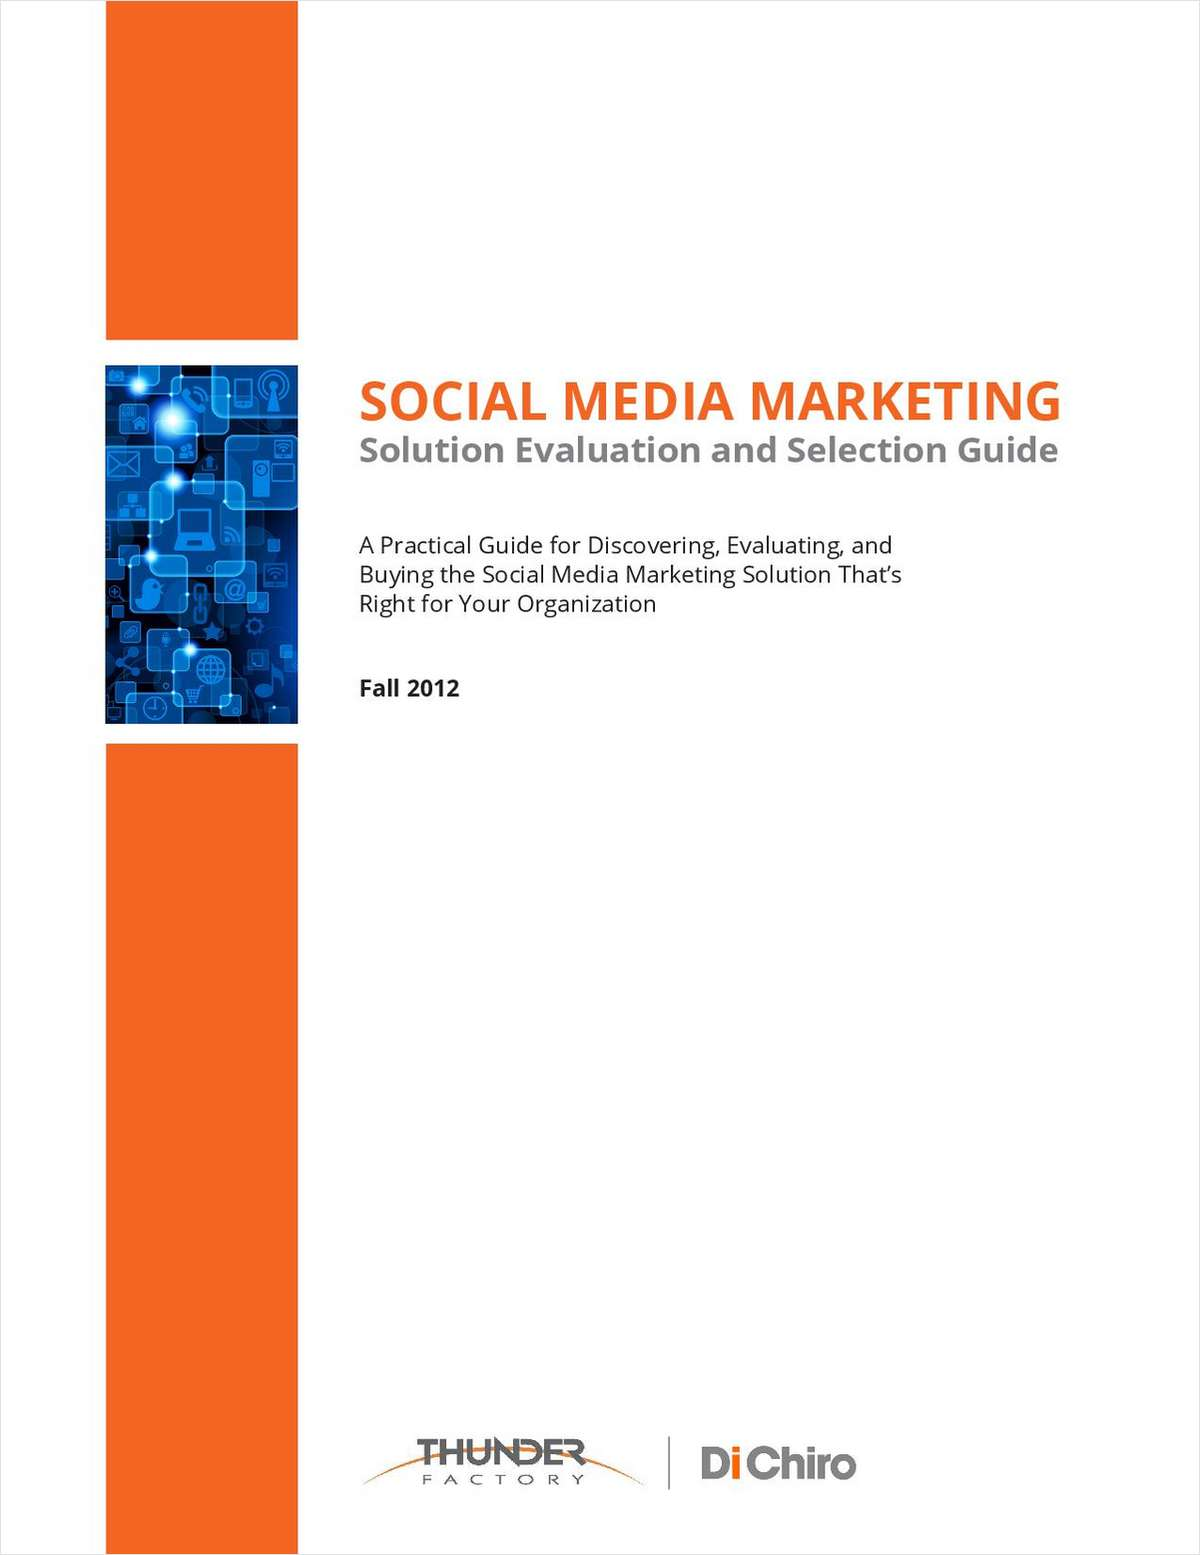 Social Media Marketing: Solution Evaluation and Selection Guide